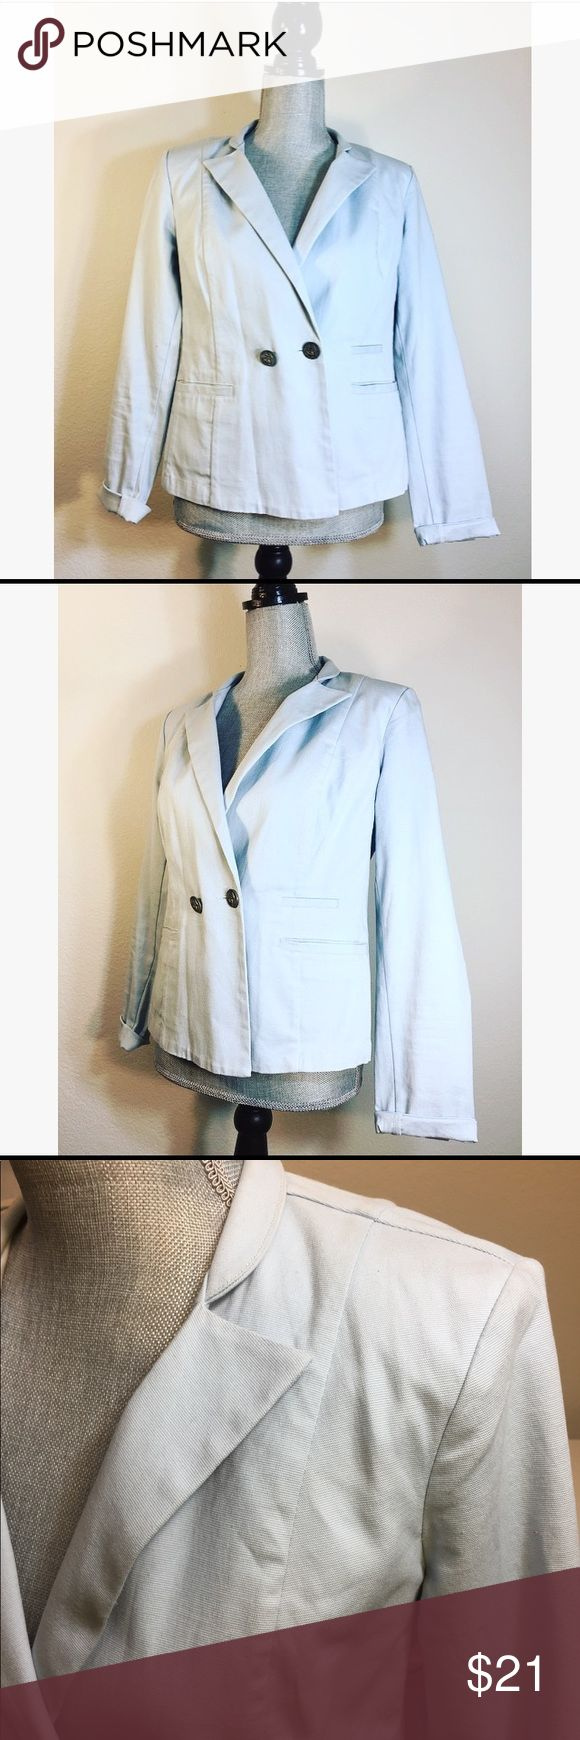 CAbi Very light blue Blazer Size 6 In excellent preowned condition  Size: Medium  Color:Black  Shoulders: 15  Bust: 18 CAbi Jackets & Coats Blazers